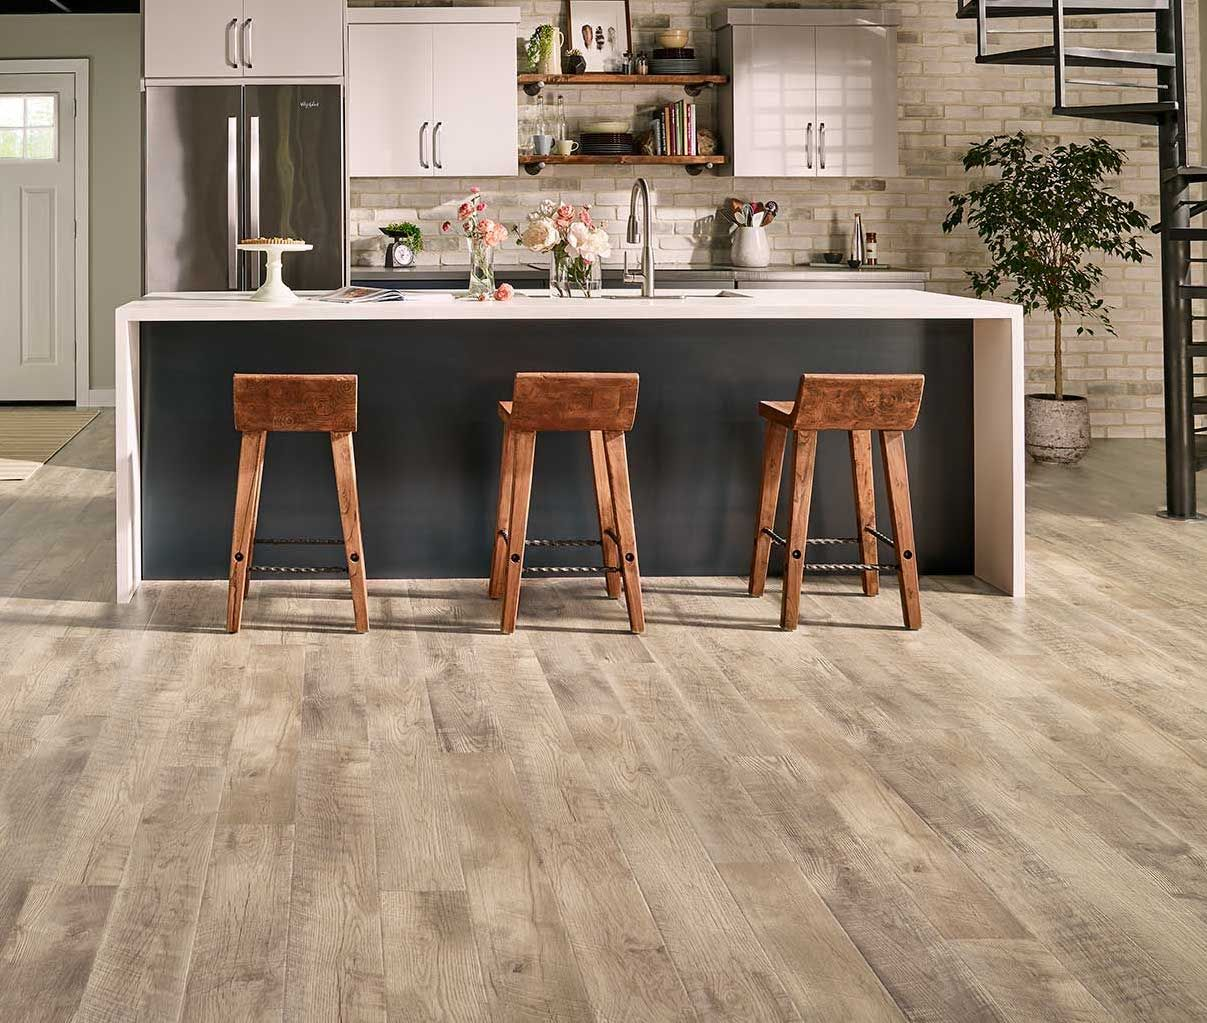 Pergo Outlast Southport Oak Is A Light Natural Colored Oak With A Cross Sawn Deep Texture Giving An Authentic Distressed Look To The Flooring The C Pavimenti